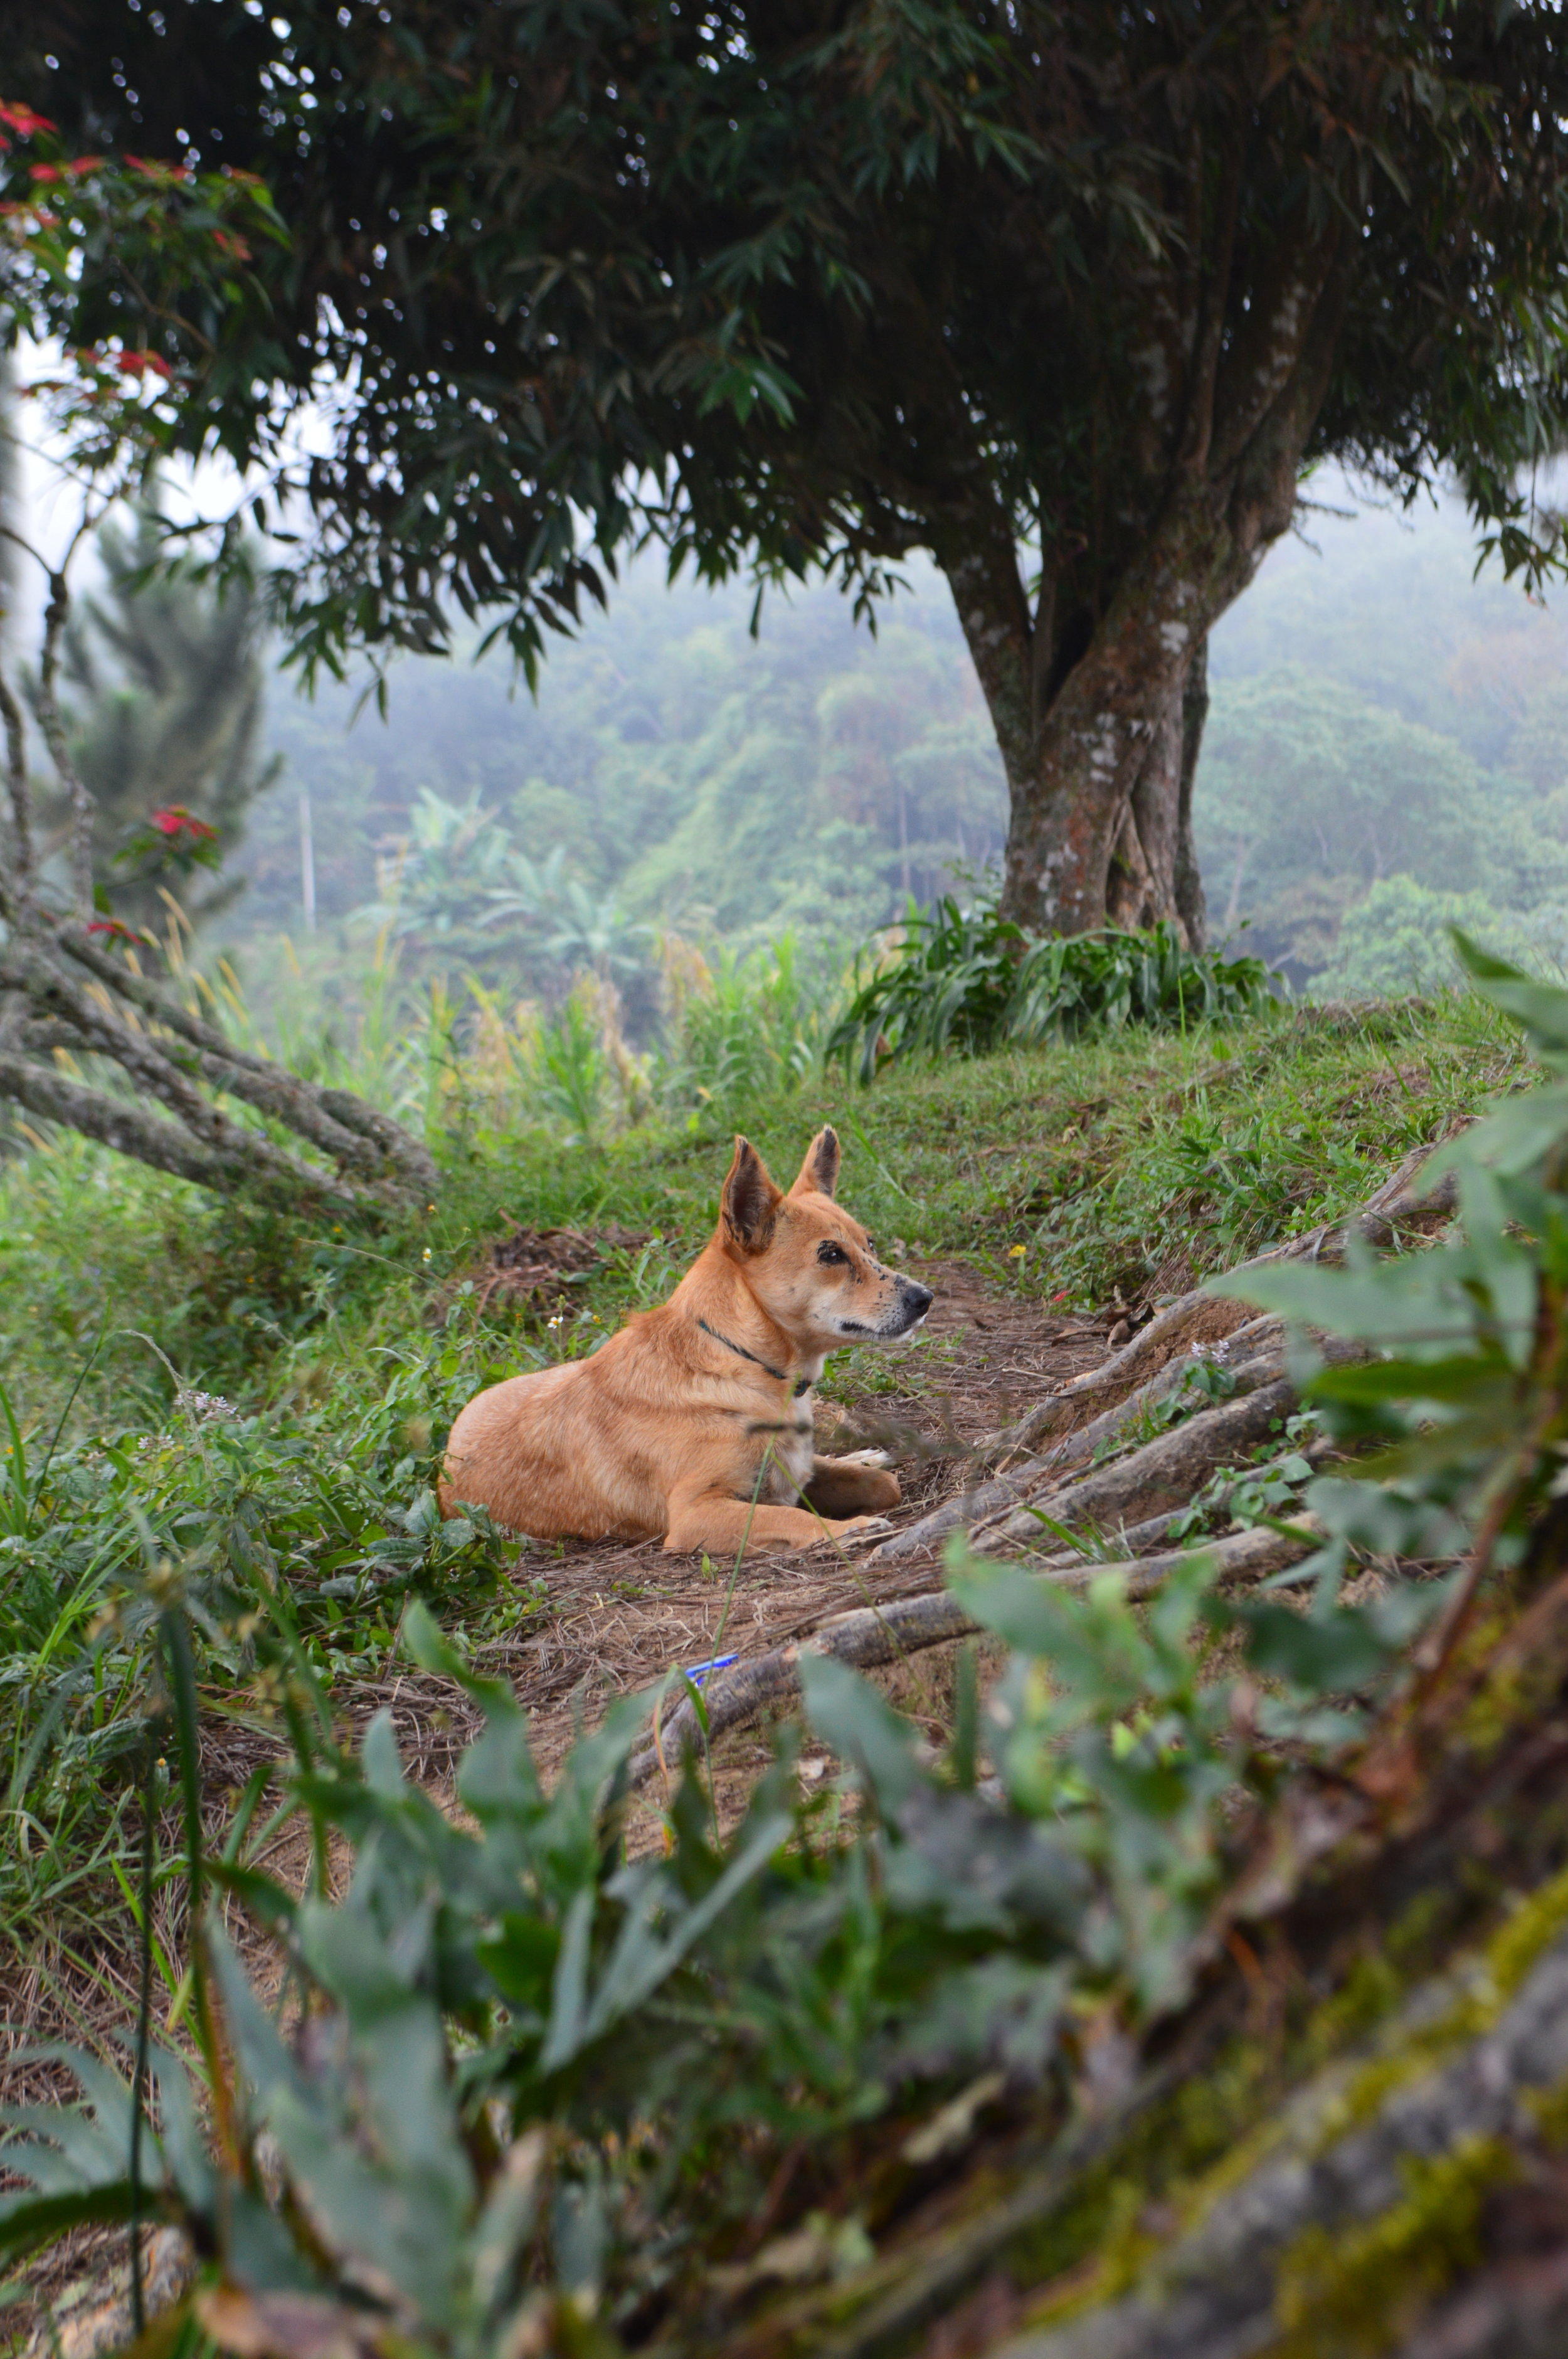 This dog from one of the fincas followed us for several miles and would stop when we stopped to take a break.